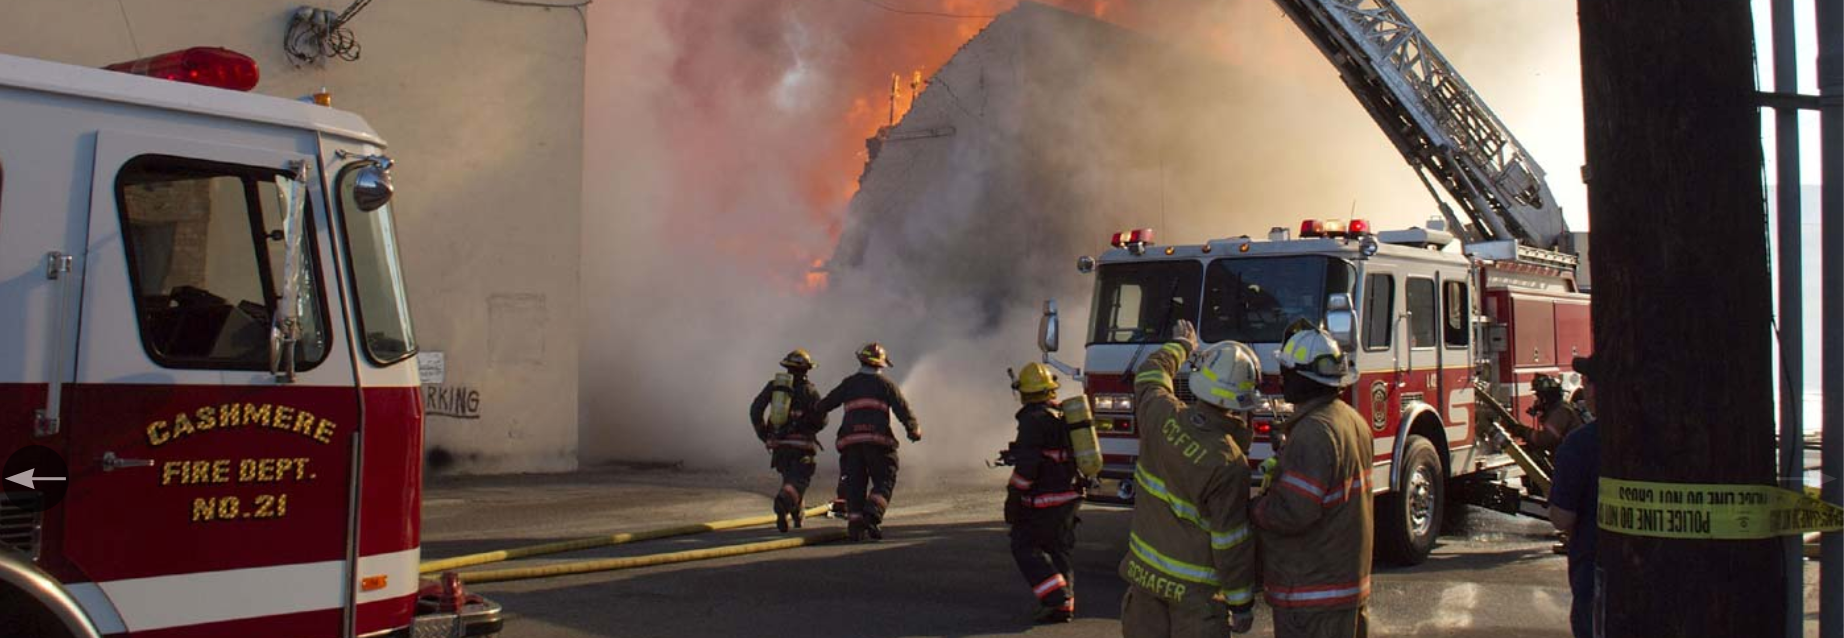 Photo by: Cary Ulrich (Go USA, Columbia Street Fire - June 2009)